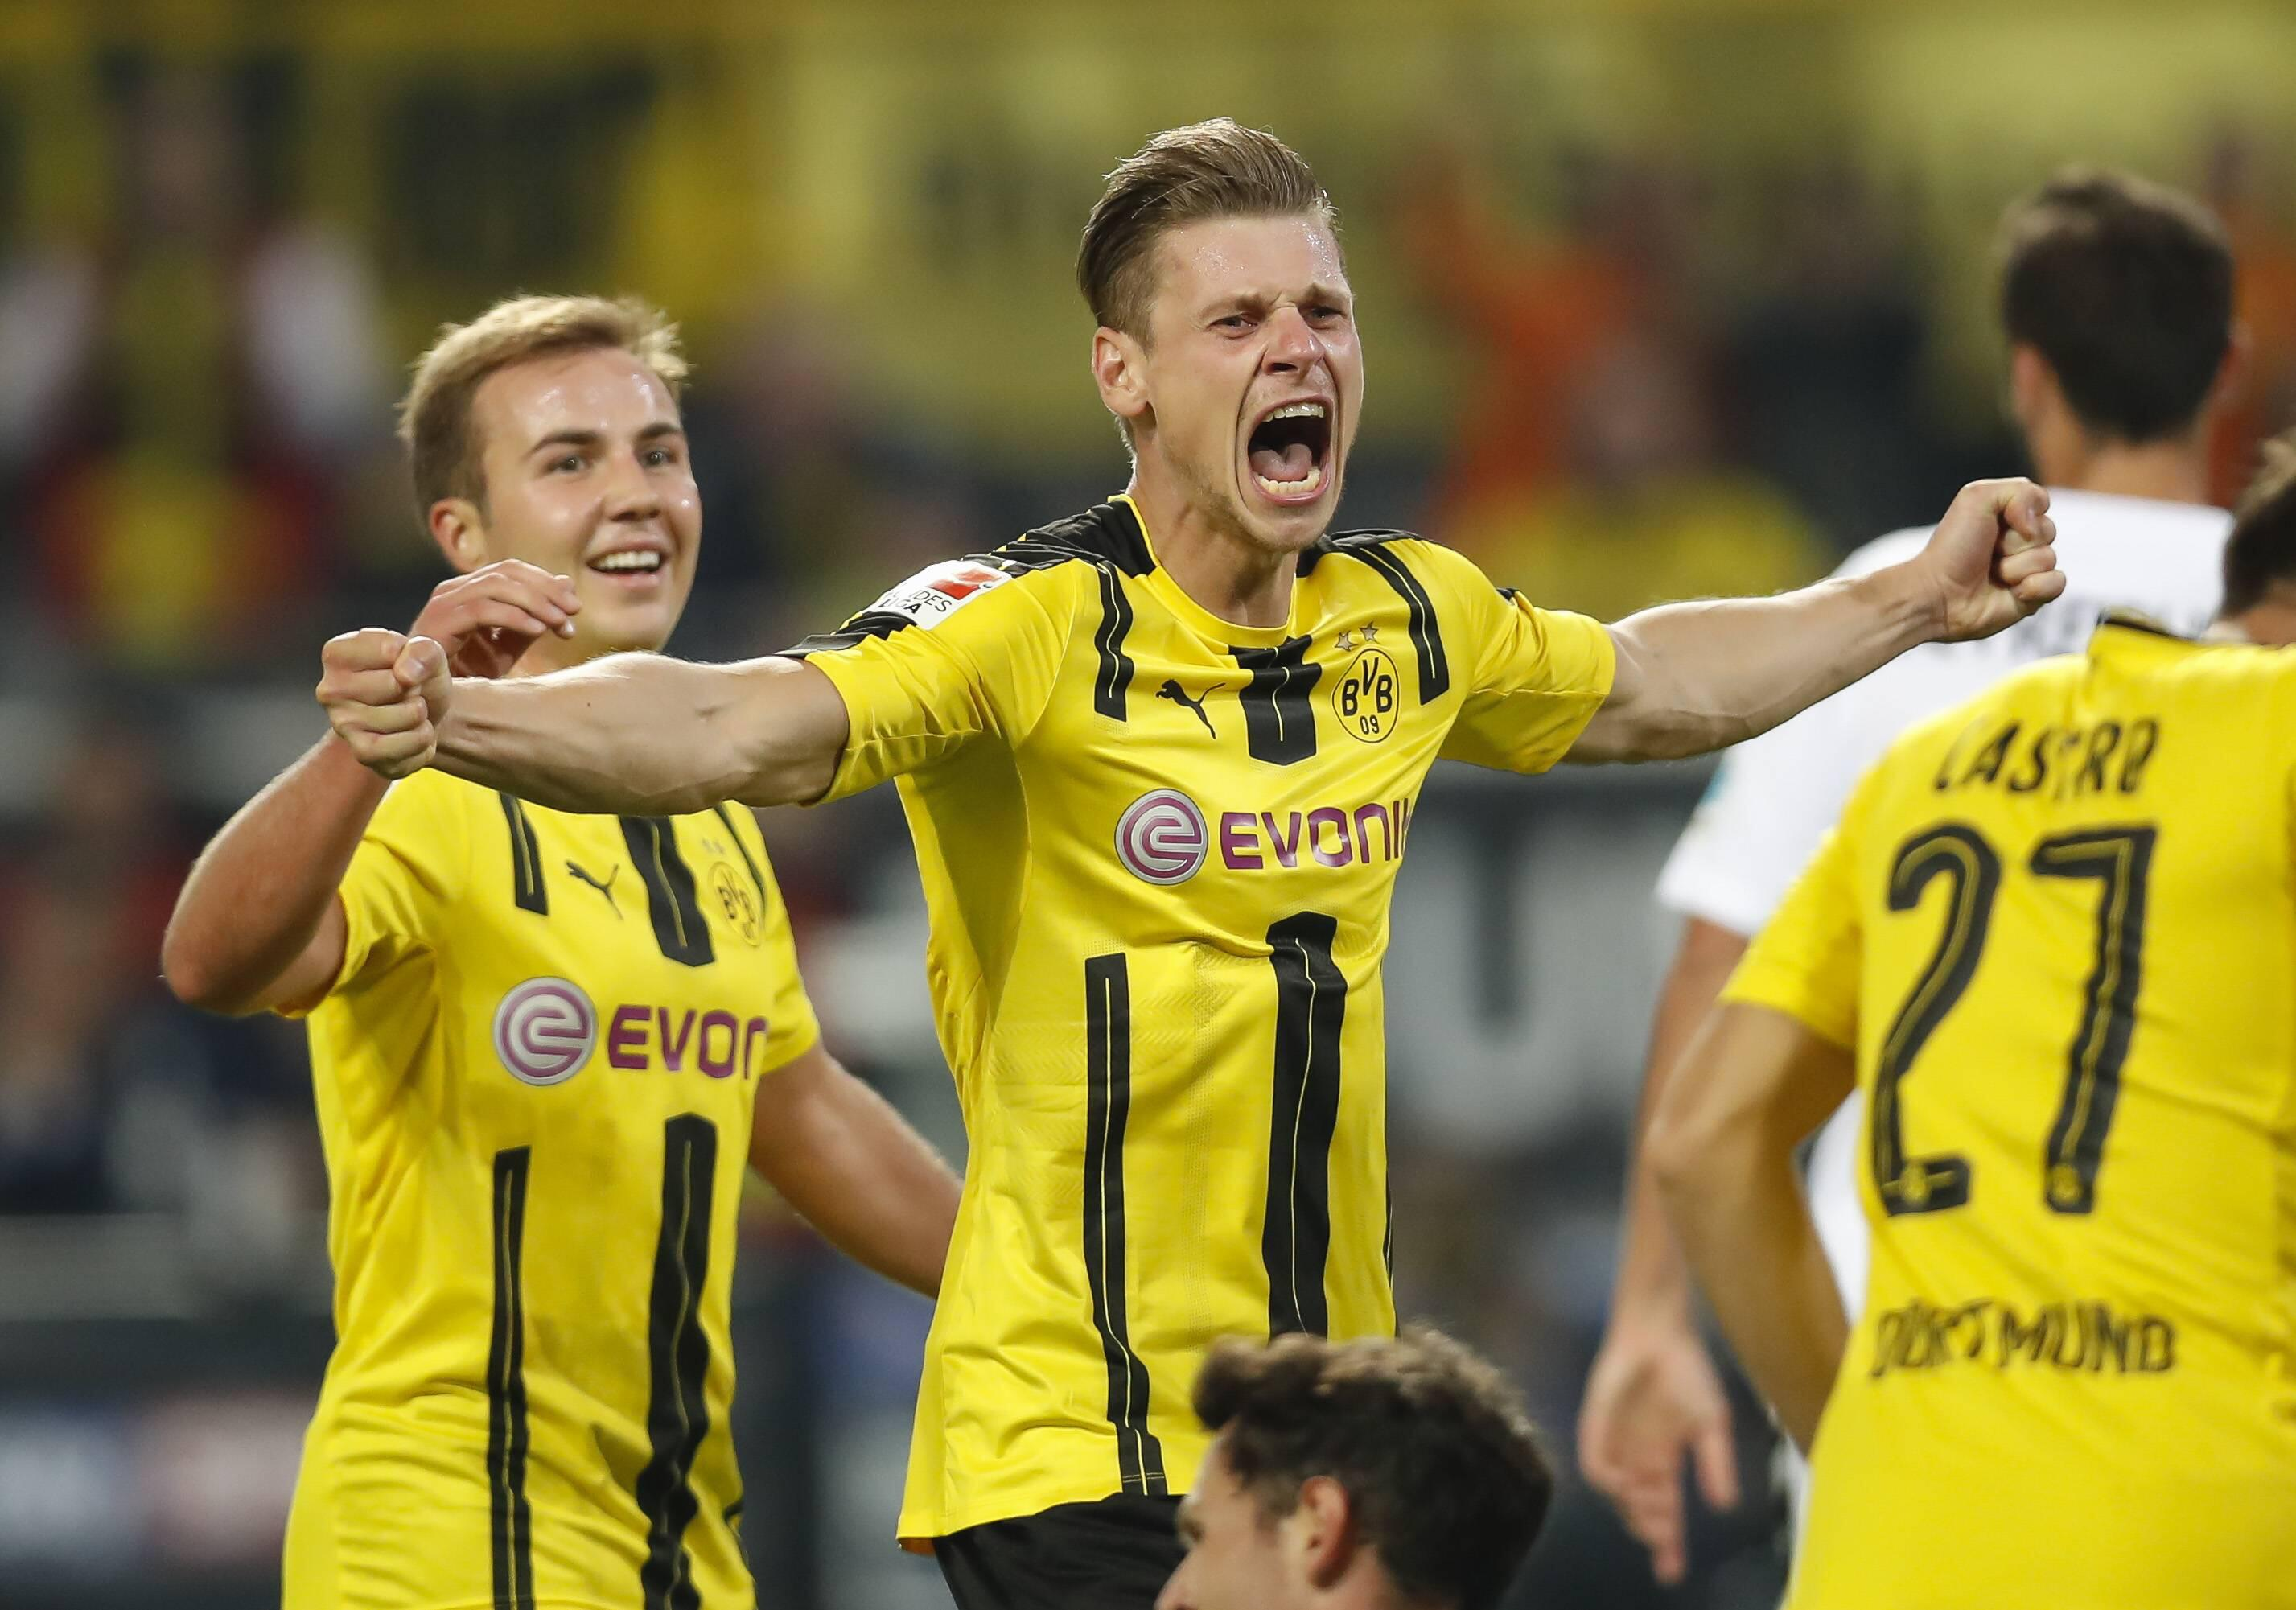 bvb gruppe champions league